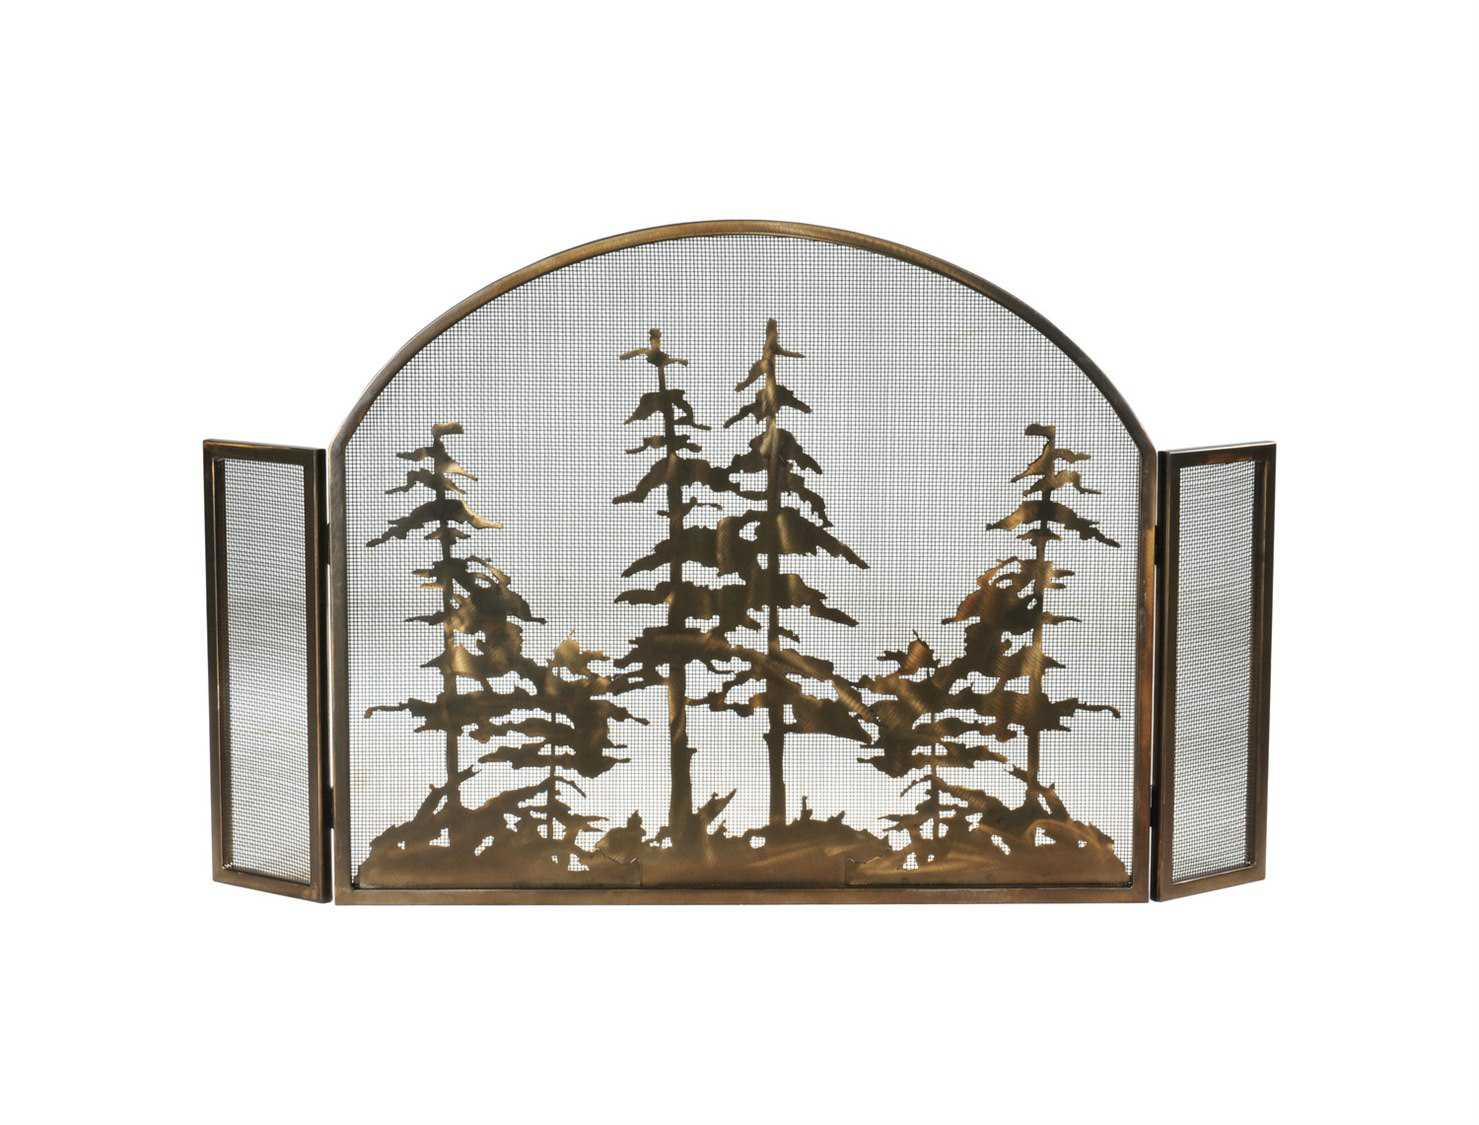 Meyda Tiffany Tall Pines Arched Fireplace Screen My119082